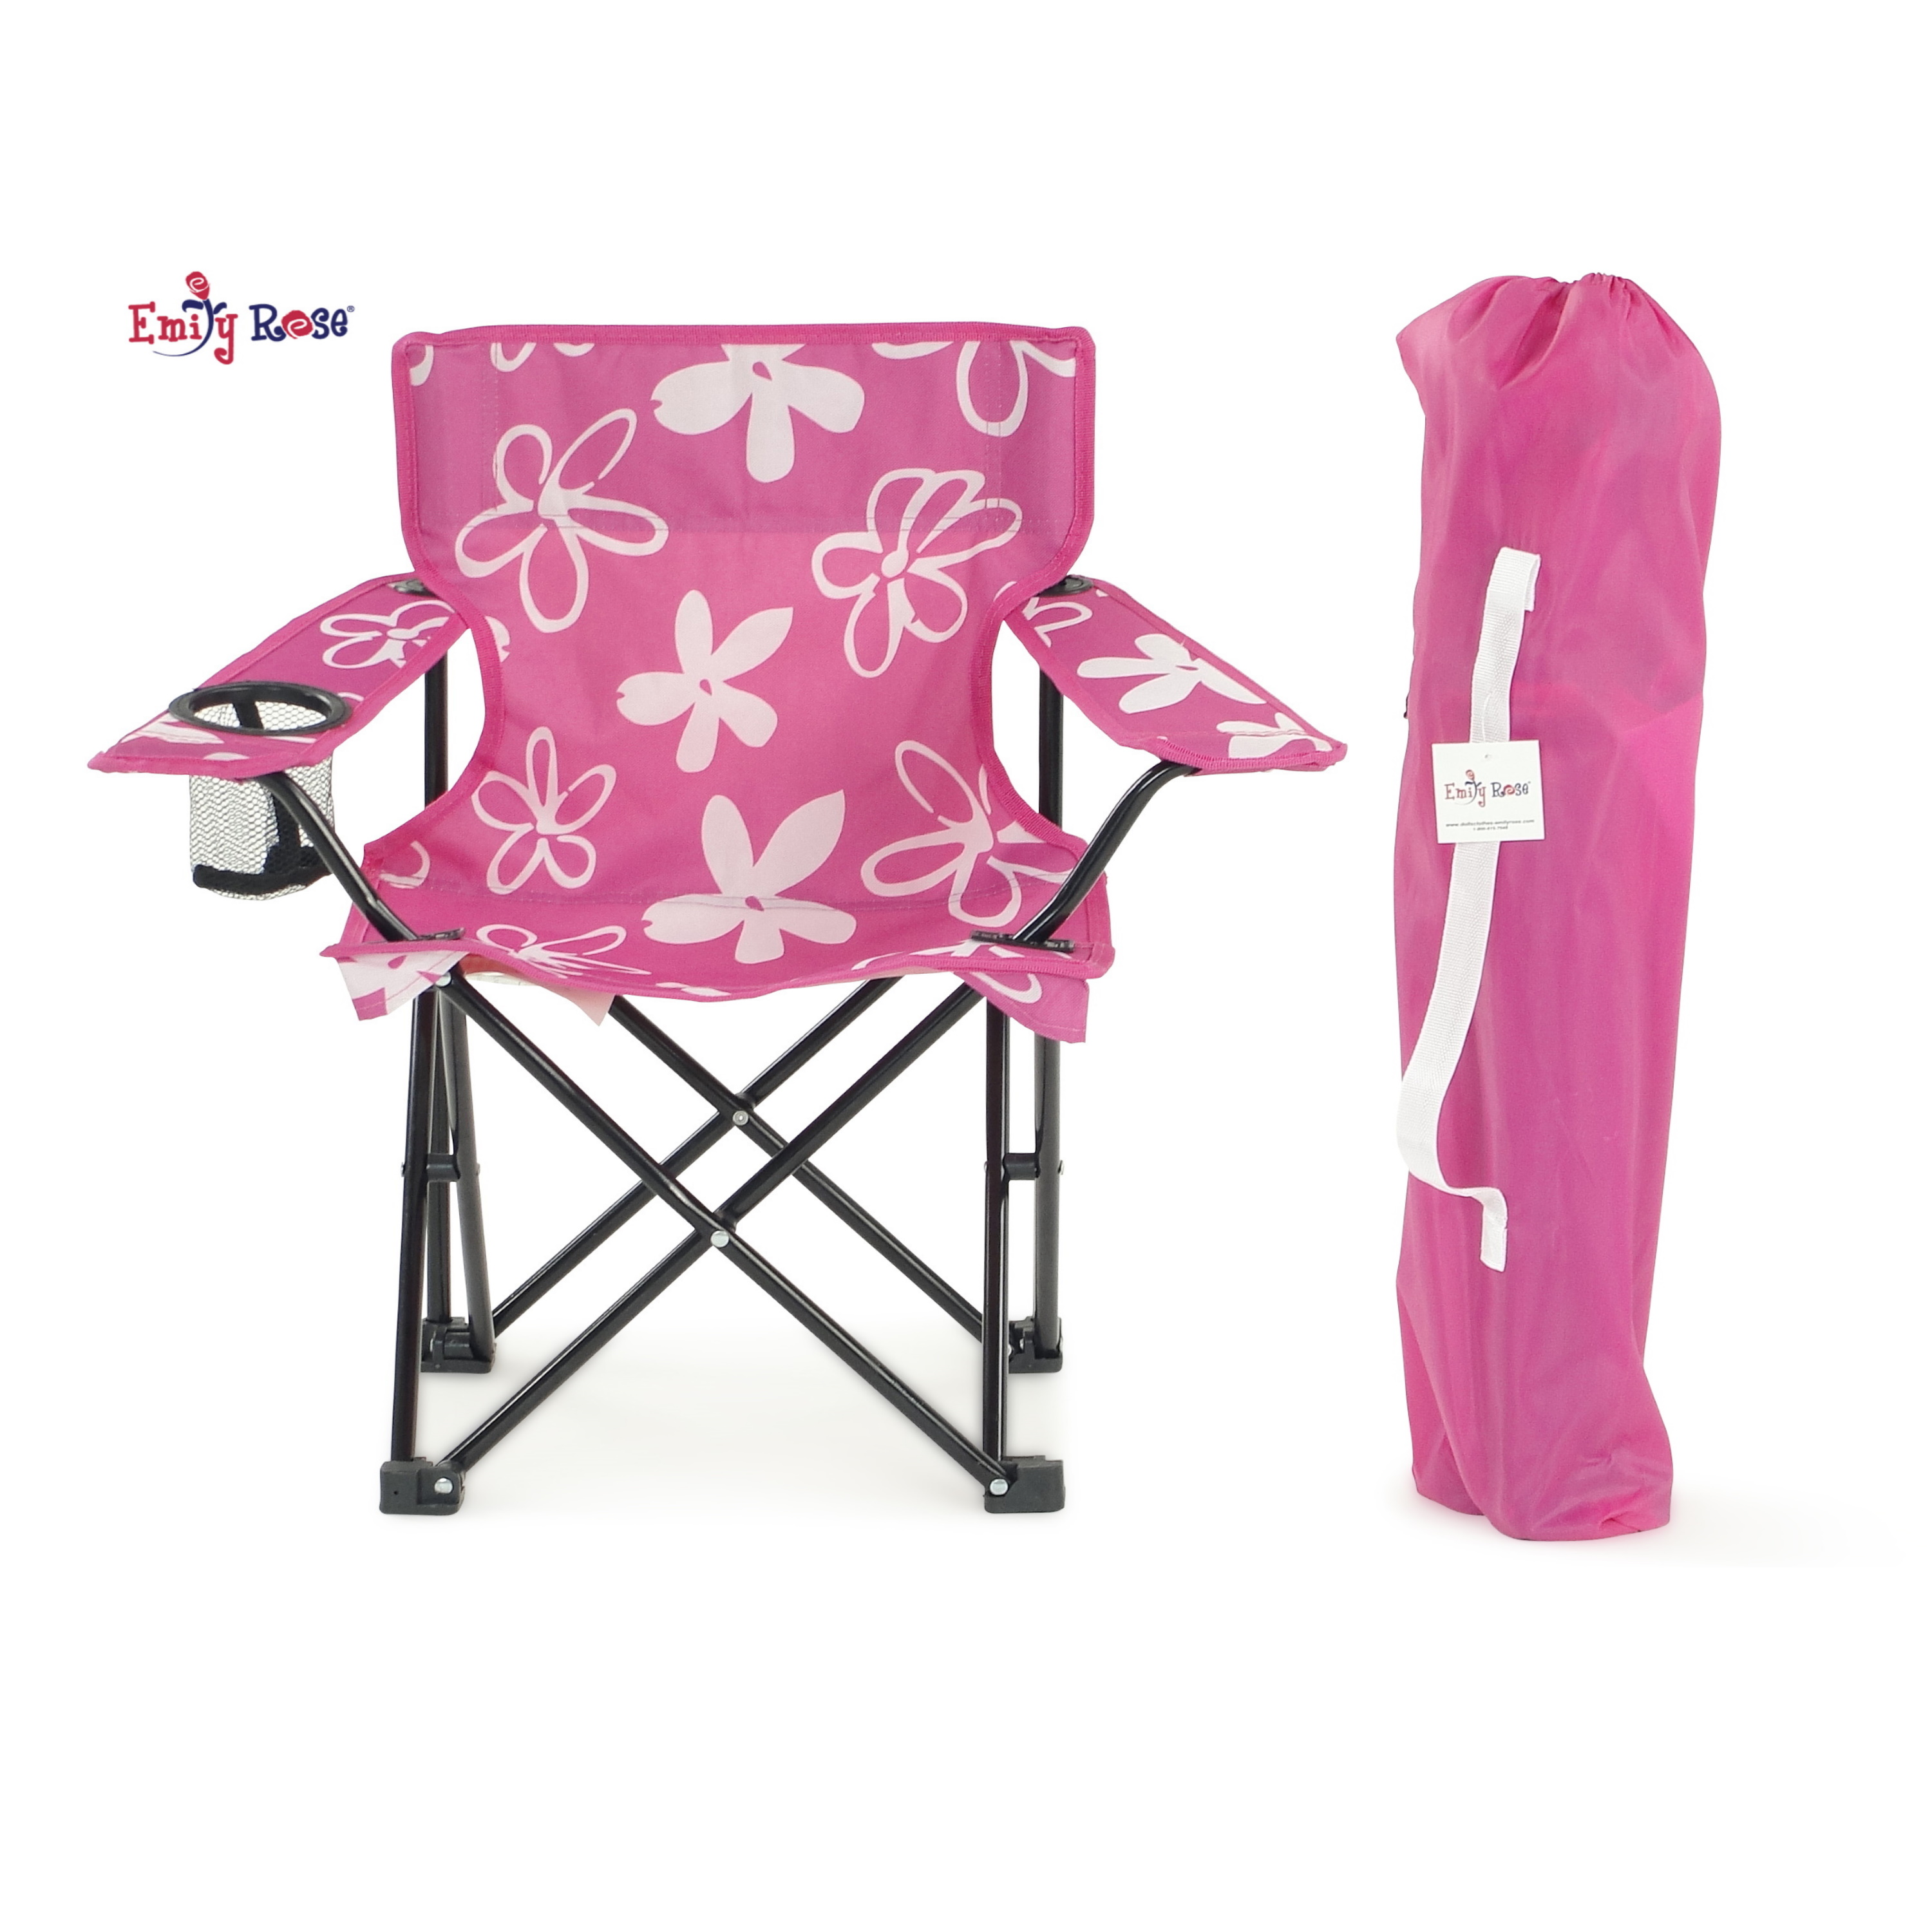 Kids Children Camping Chairs Pink and Blue